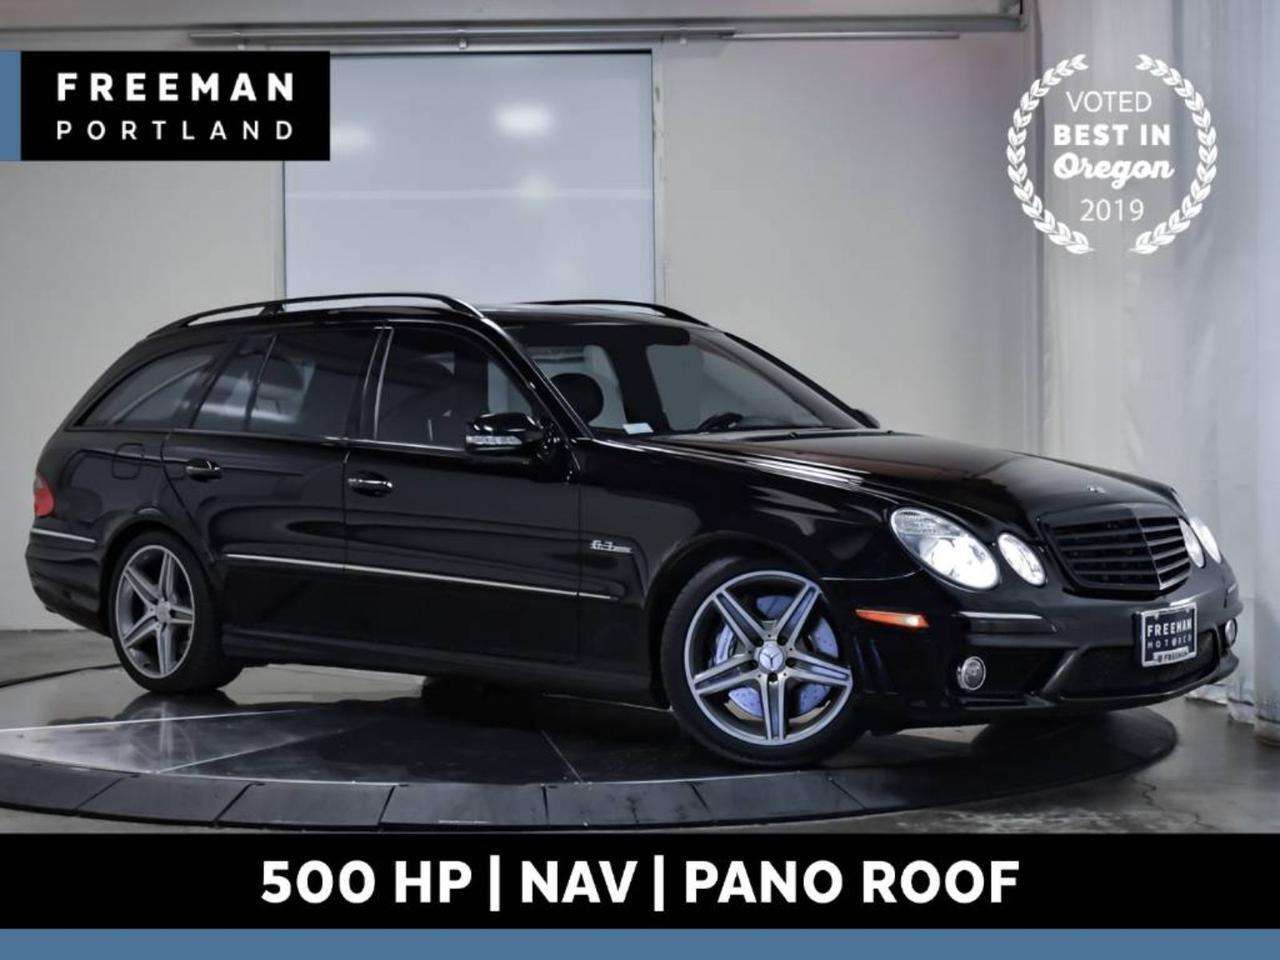 2007 Mercedes-Benz E63 AMG Wagon NAV Climate Seats Pano Roof 46k Miles